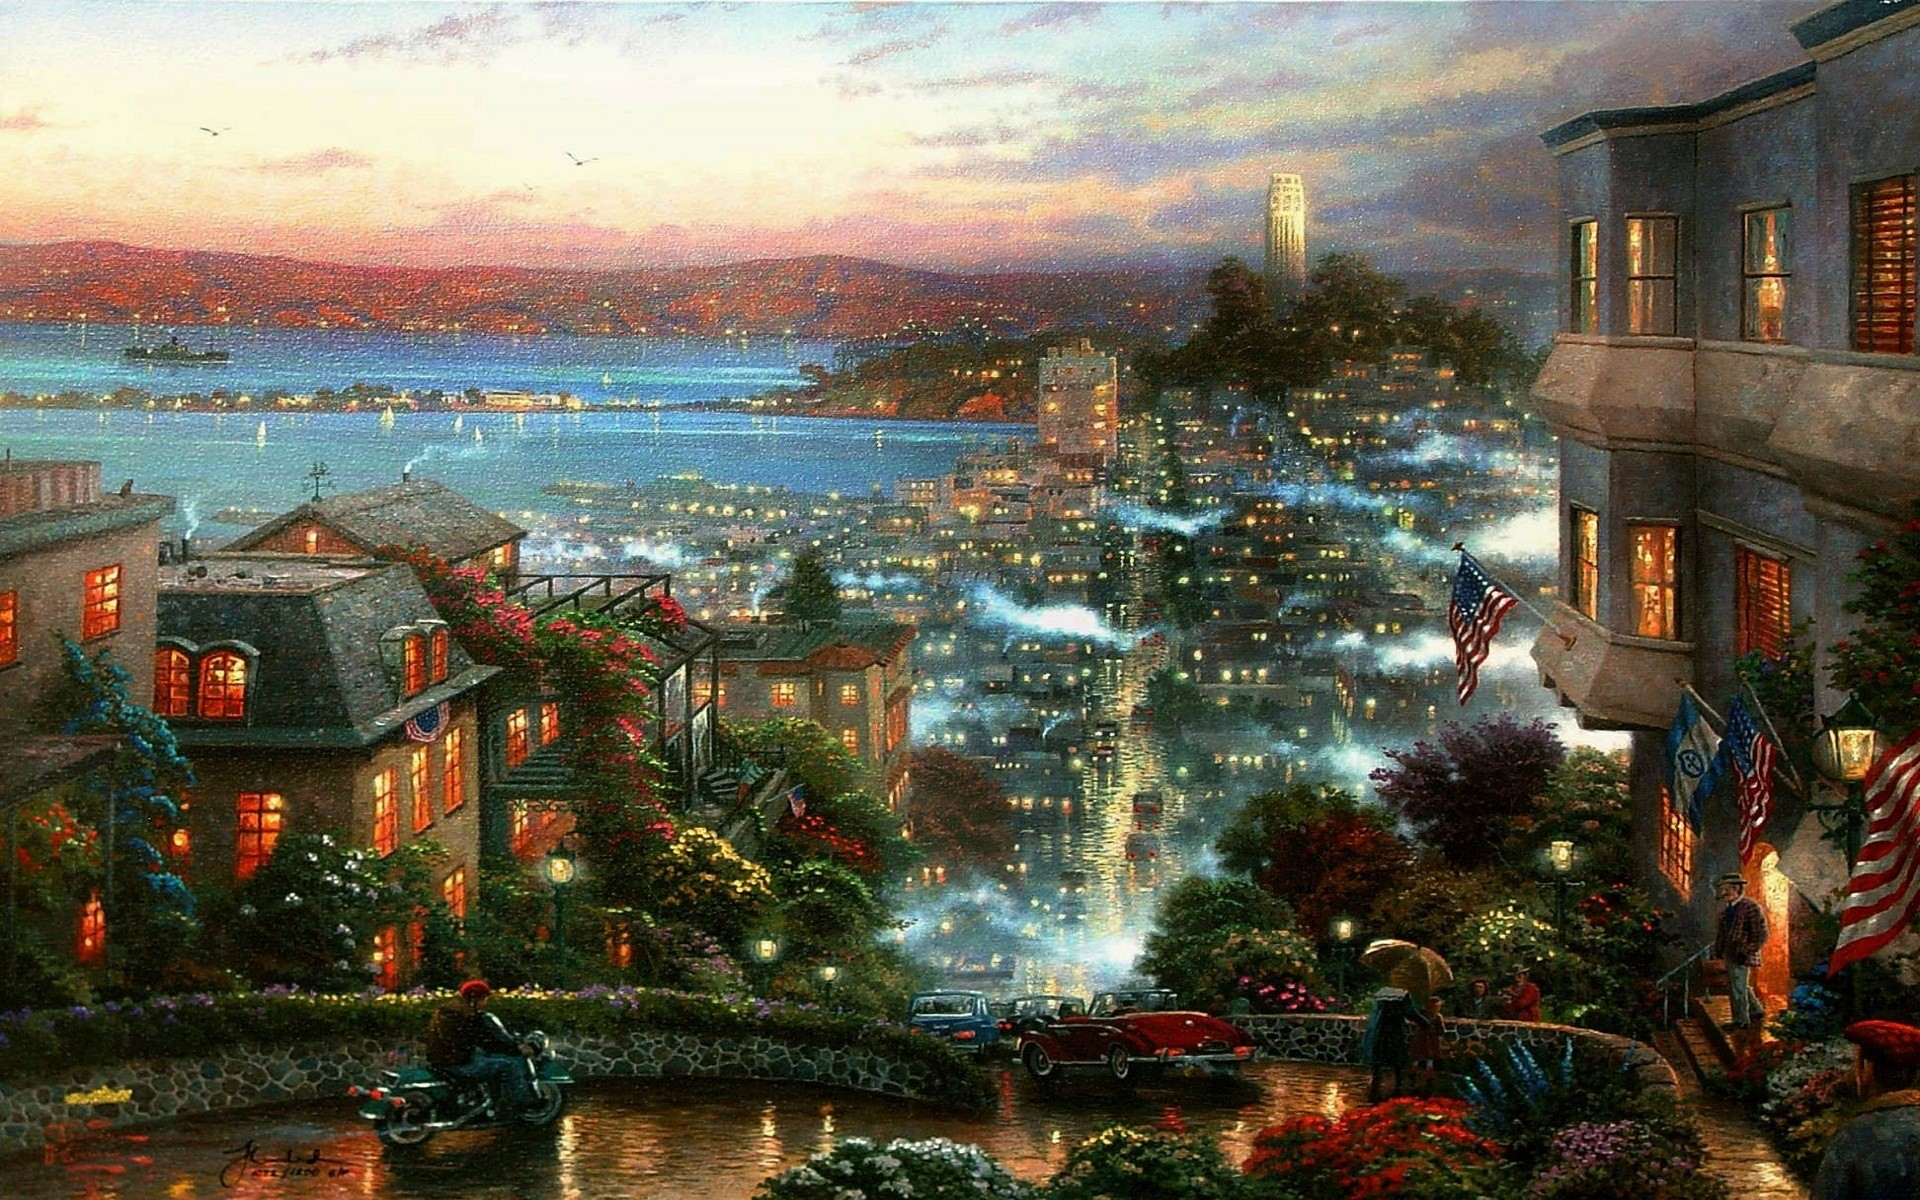 Thomas Kinkade Christmas.Thomas Kinkade Wallpapers For Desktop 64 Images